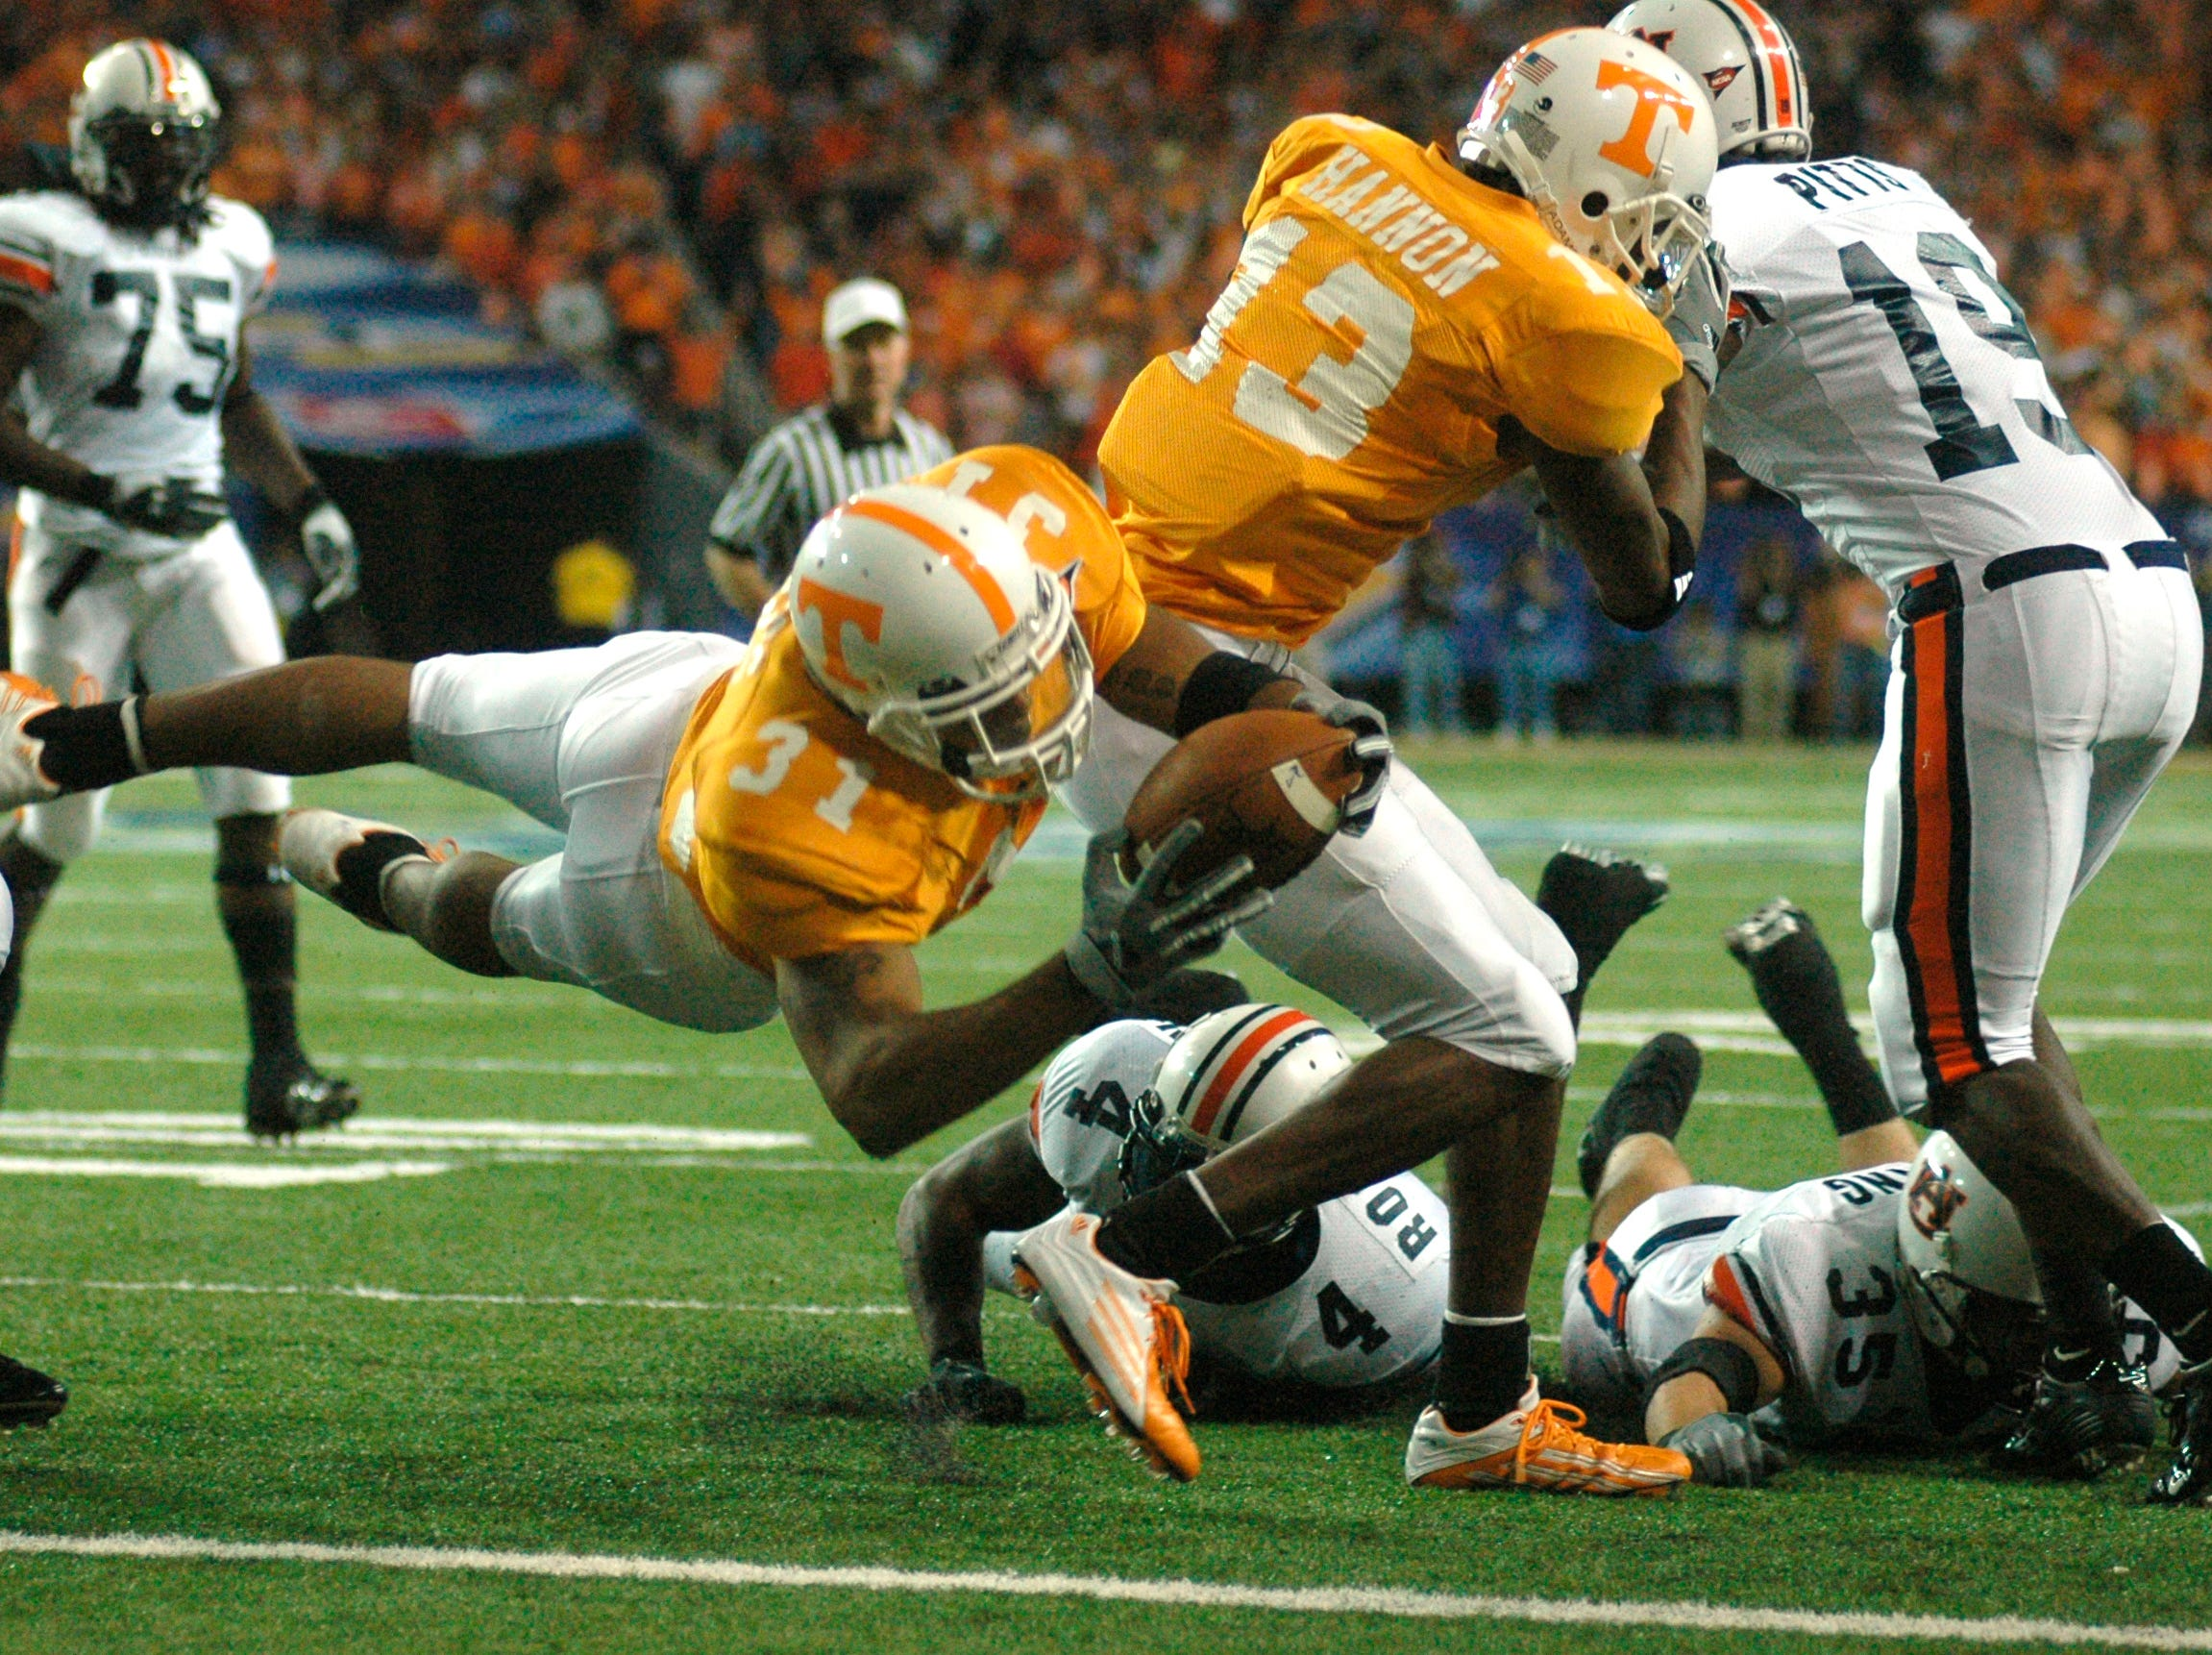 Tennessee running back Gerald Riggs (31) flies into the end zone for a touchdown against Auburn during the Southeastern Conference championship game Saturday in Atlanta in 2004. Riggs rushed for 182 yards and two TDs in a losing effort against Auburn.